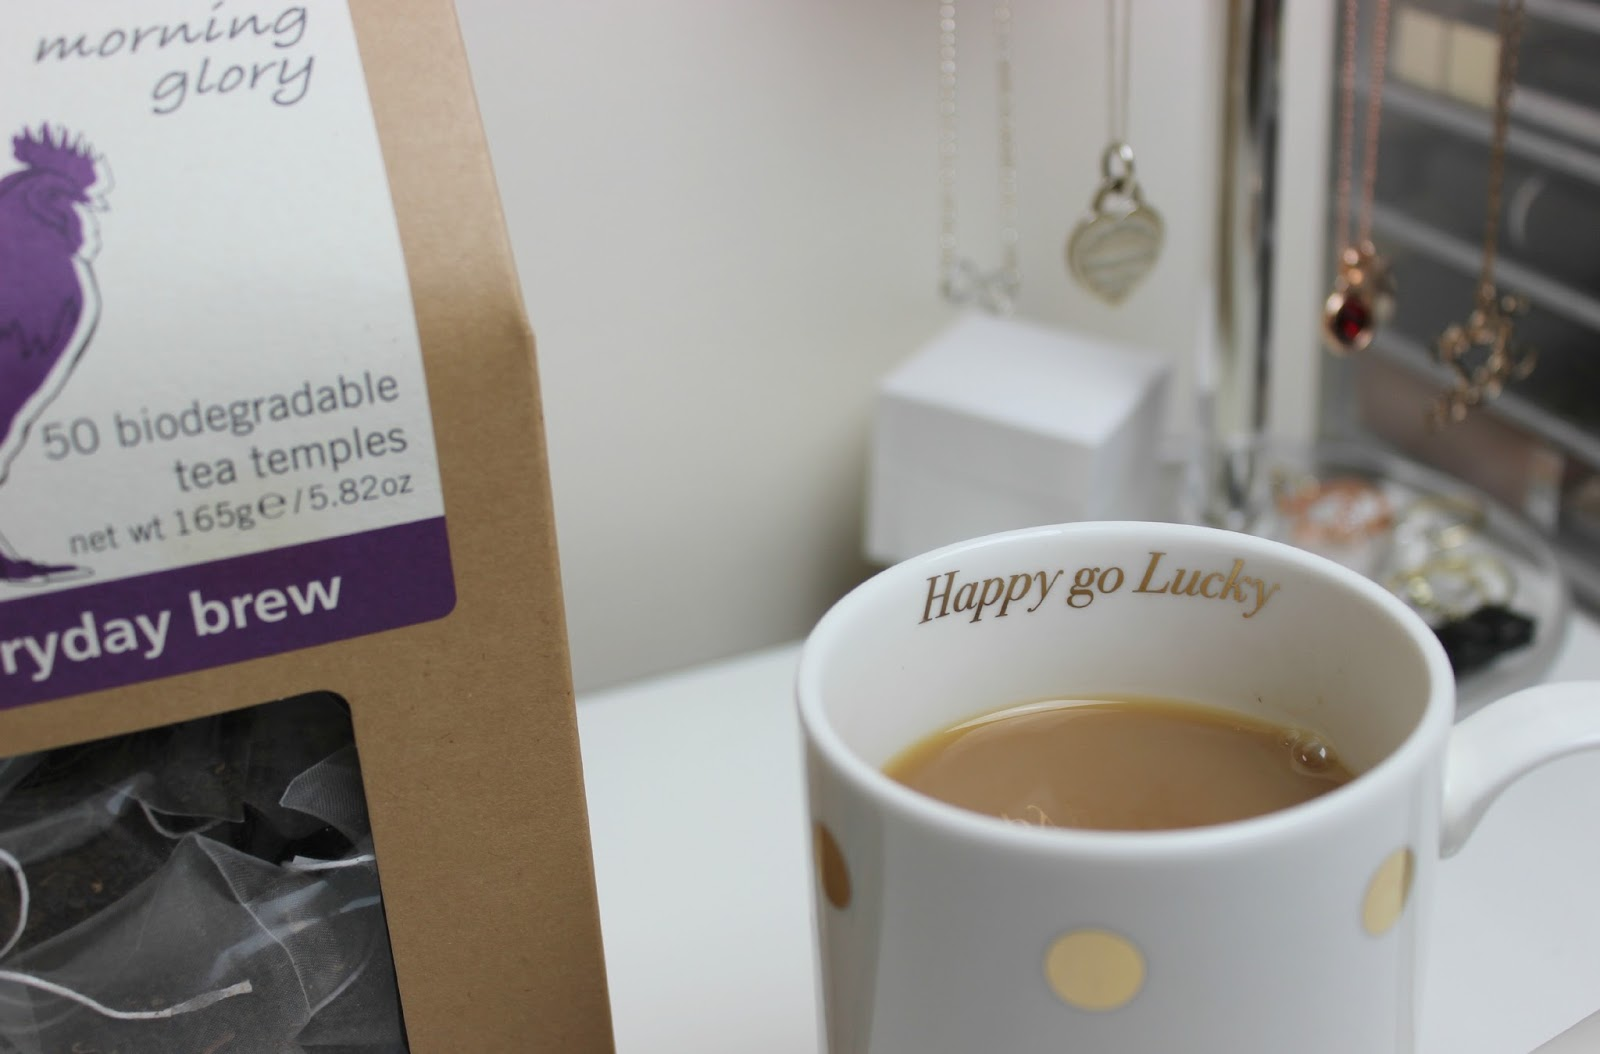 A picture of Teapigs Morning Glory Everyday Brew